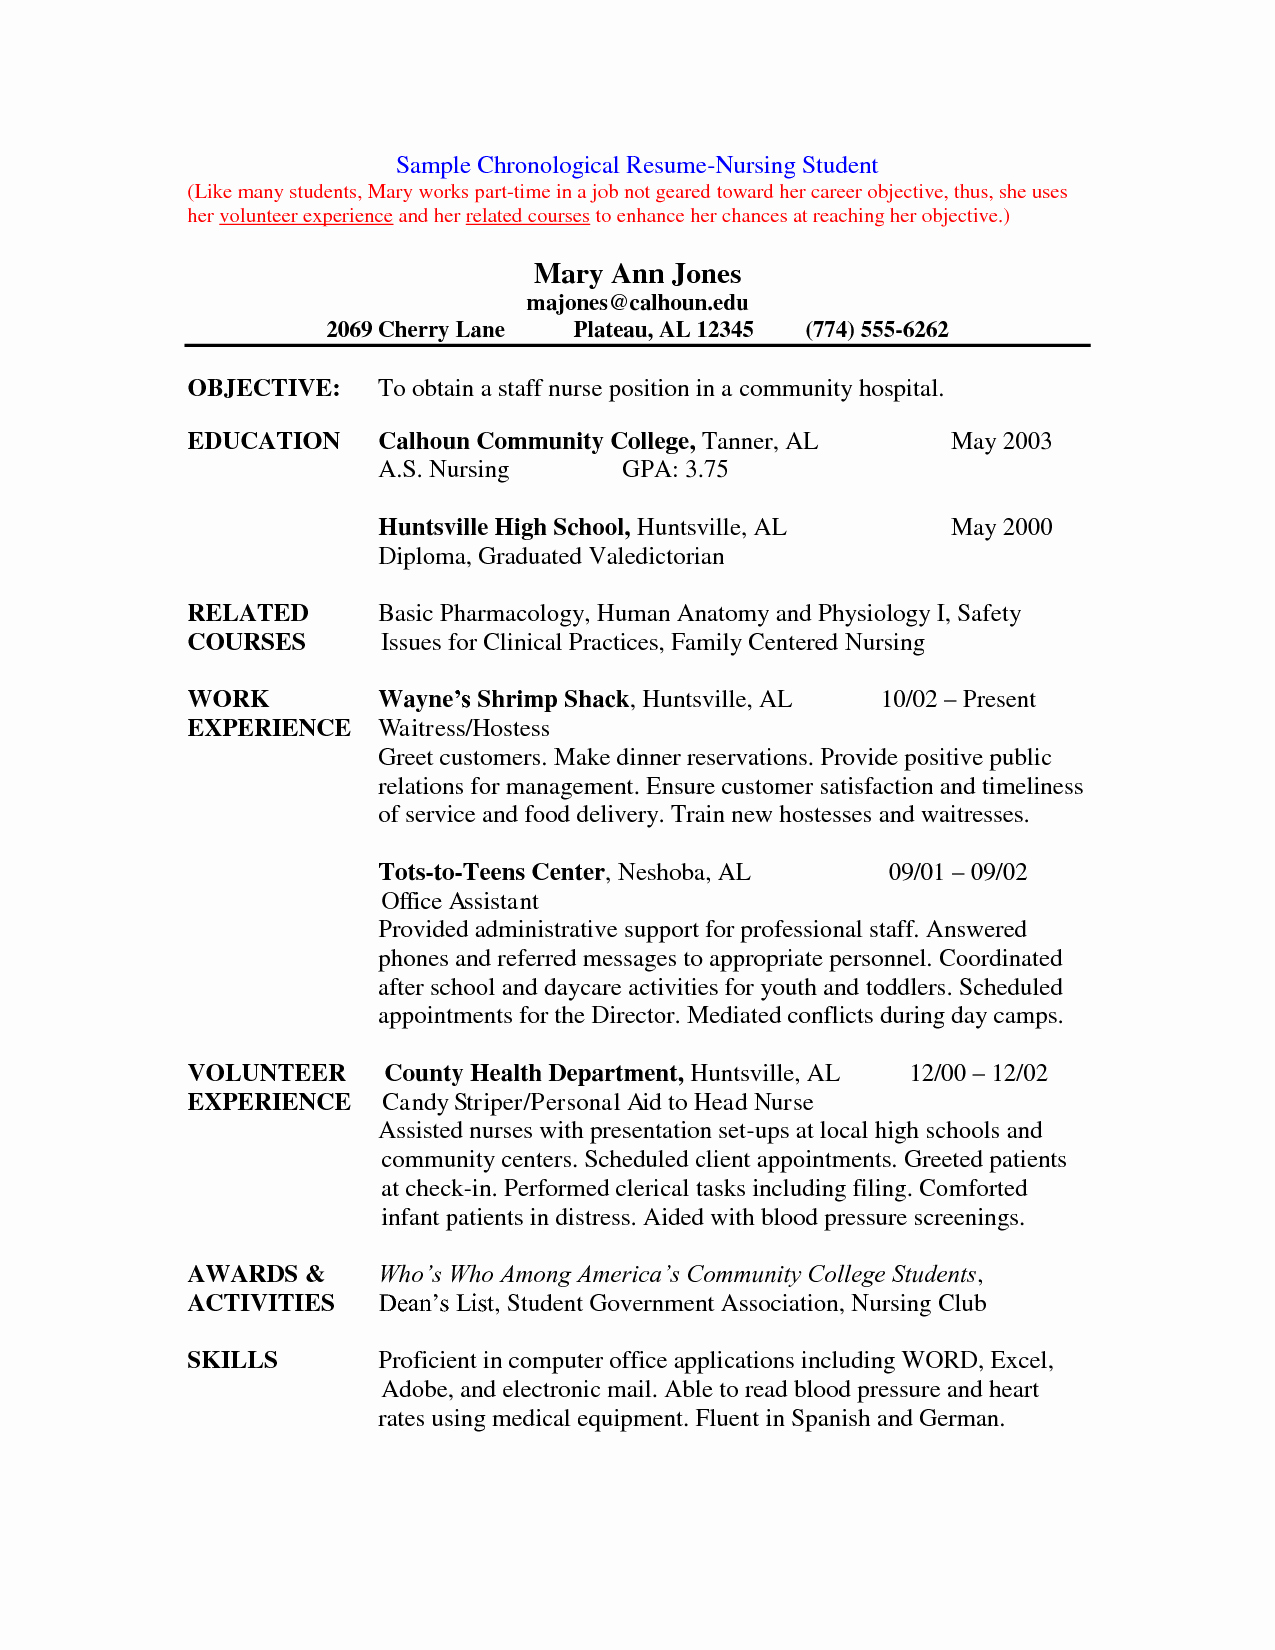 Resume for Nursing Student Beautiful Cover Letters for Nursing Job Application Pdf Nursing Pinterest